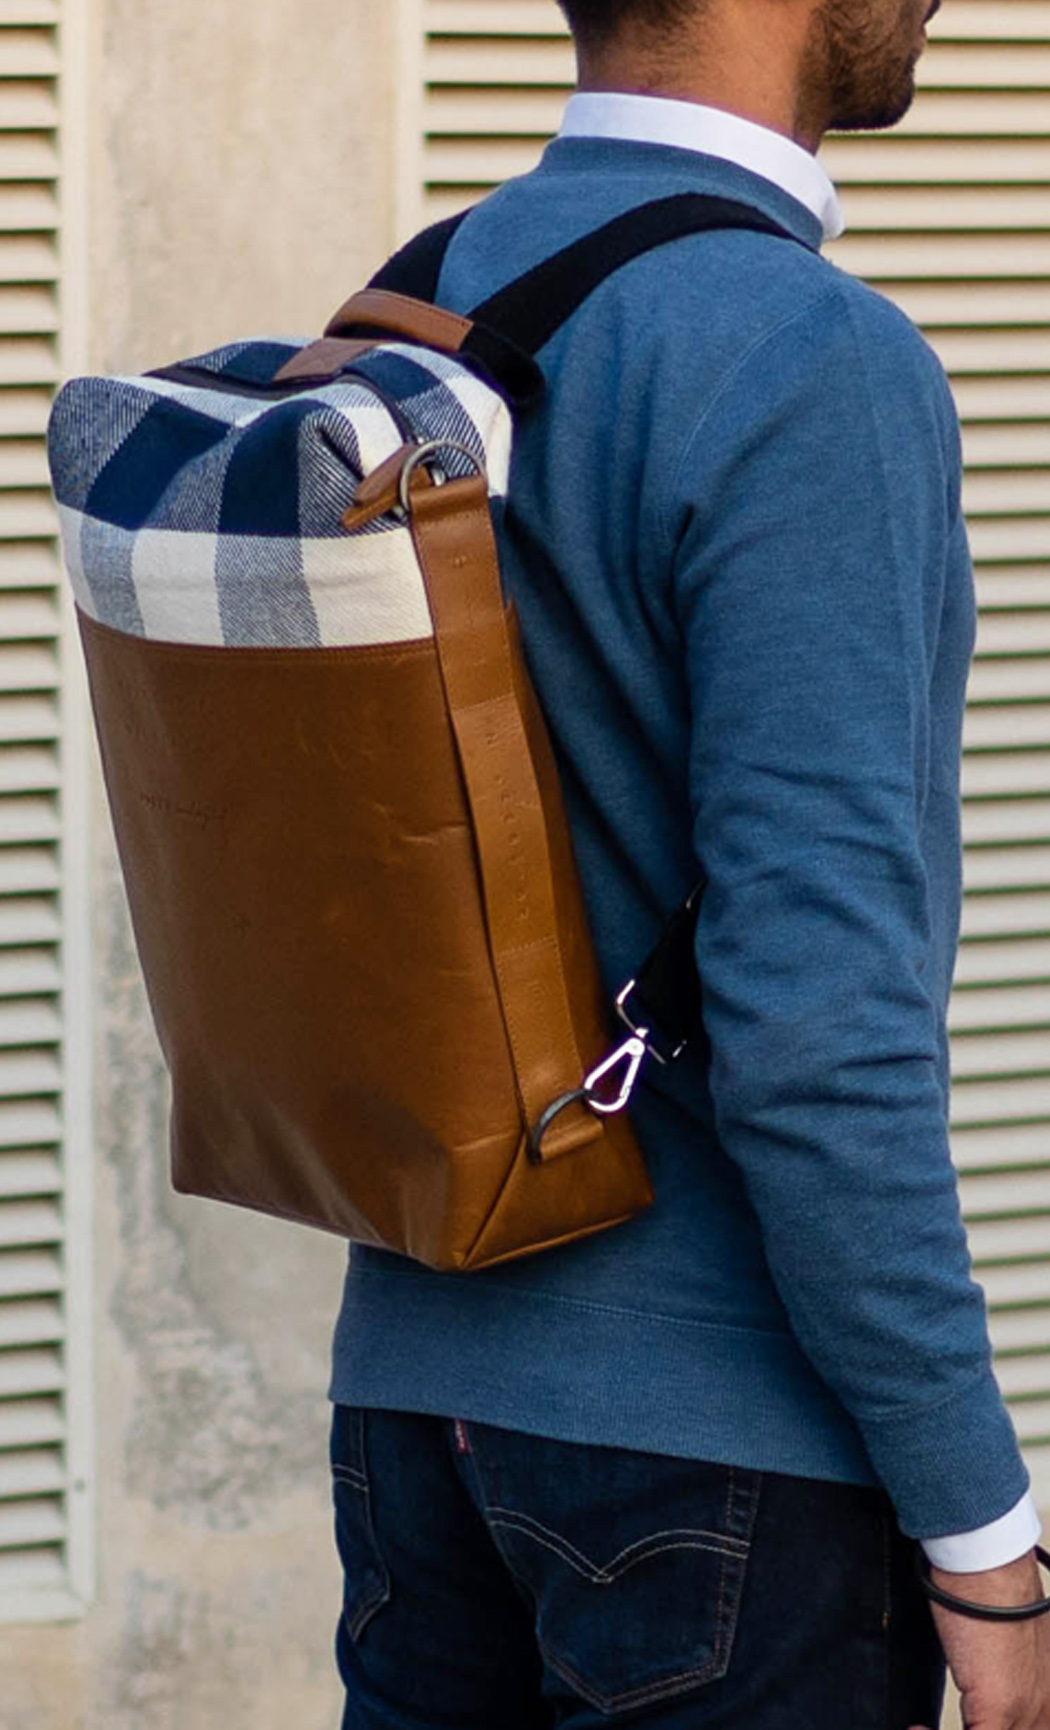 Blue and White Checks Brown Leather Laptop Convertible Backpack - Buy Online